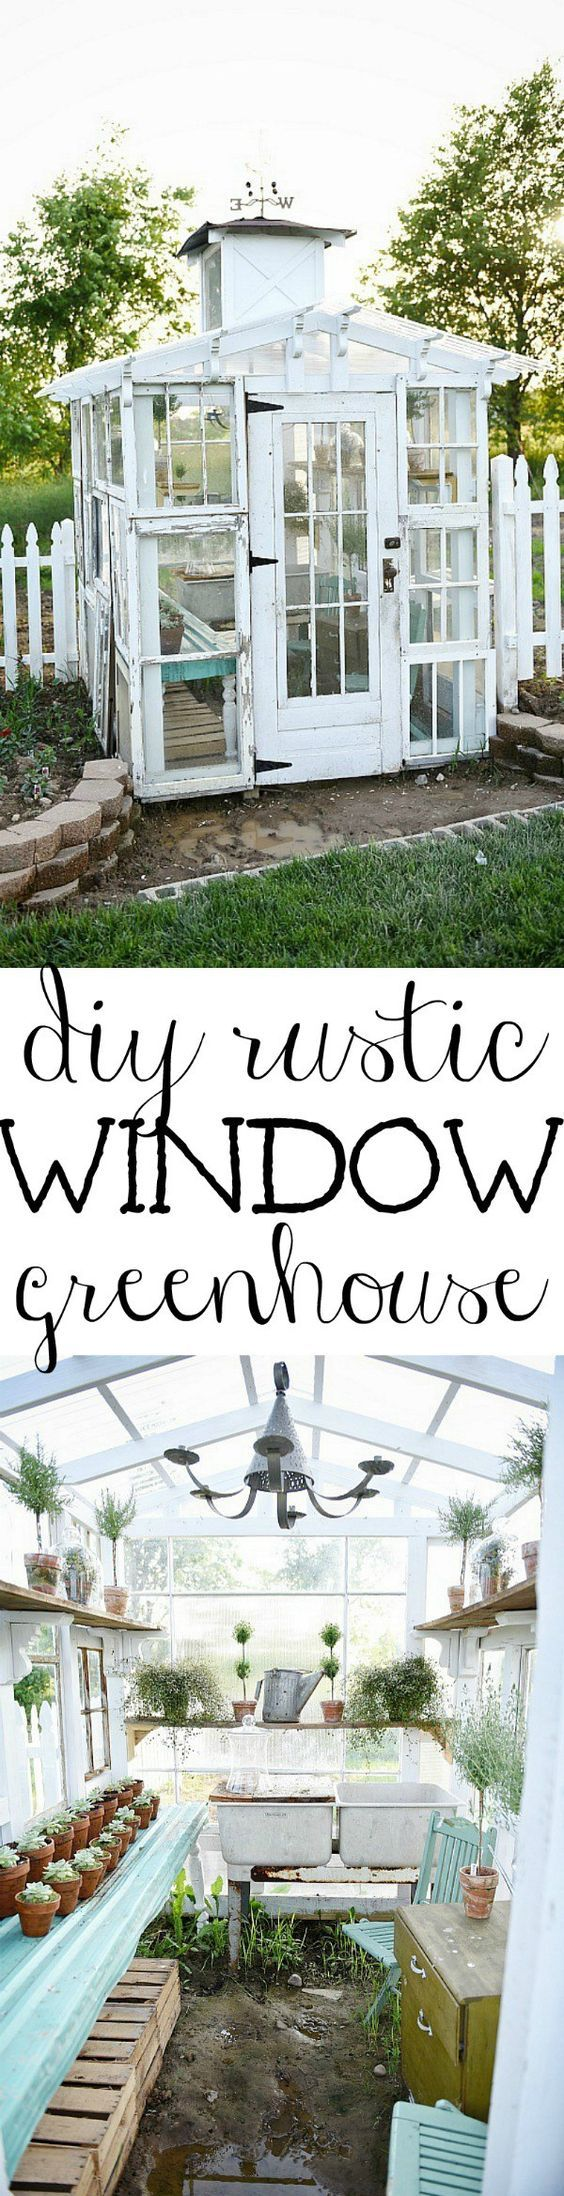 DIY Window Greenhouse | Window greenhouse, Antique windows and Window